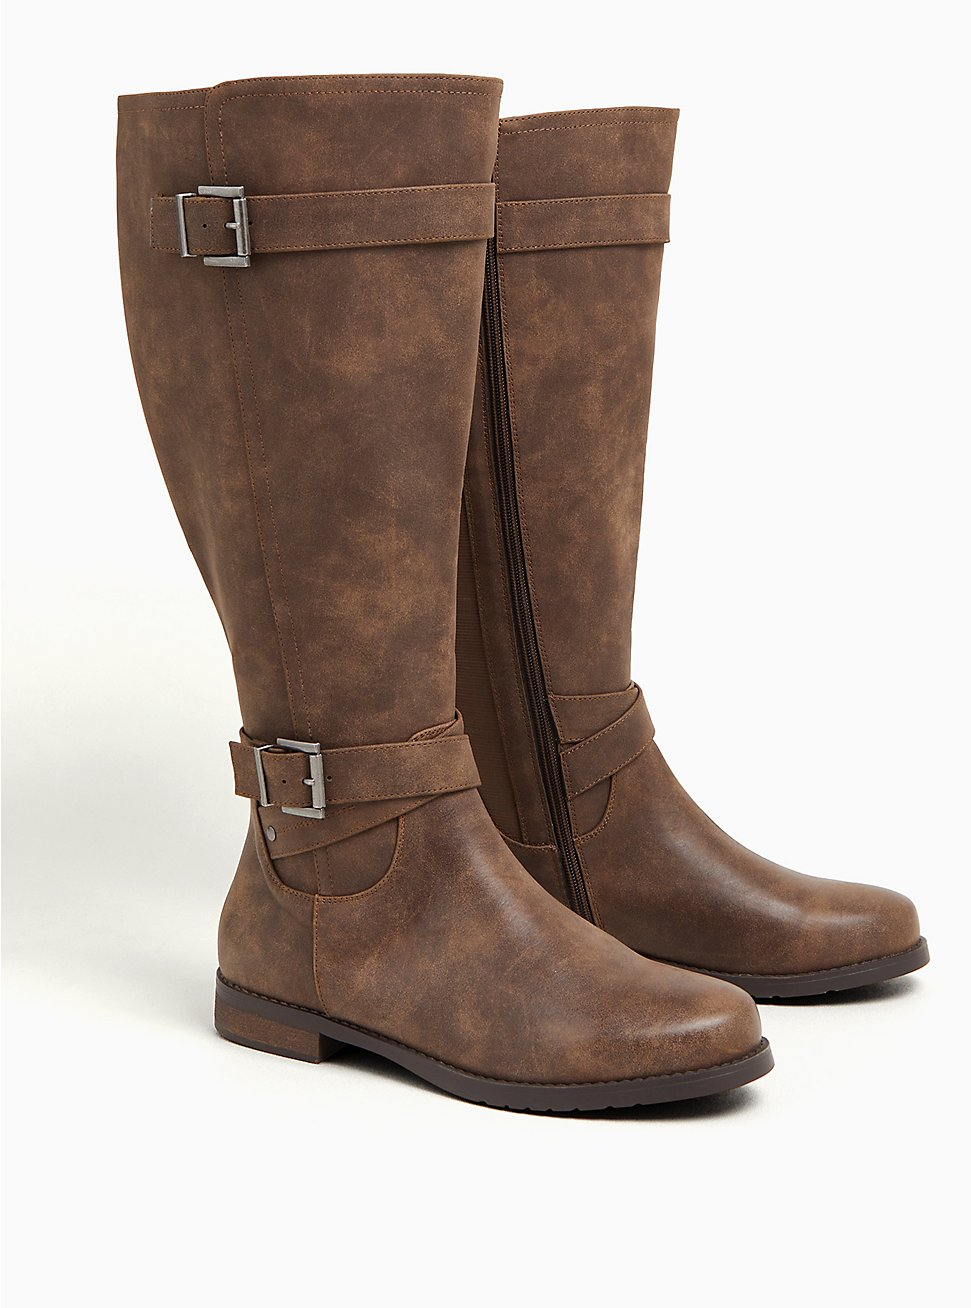 Cognac Faux Leather Dual Buckle Knee-High Boot (WW), BROWN, hi-res